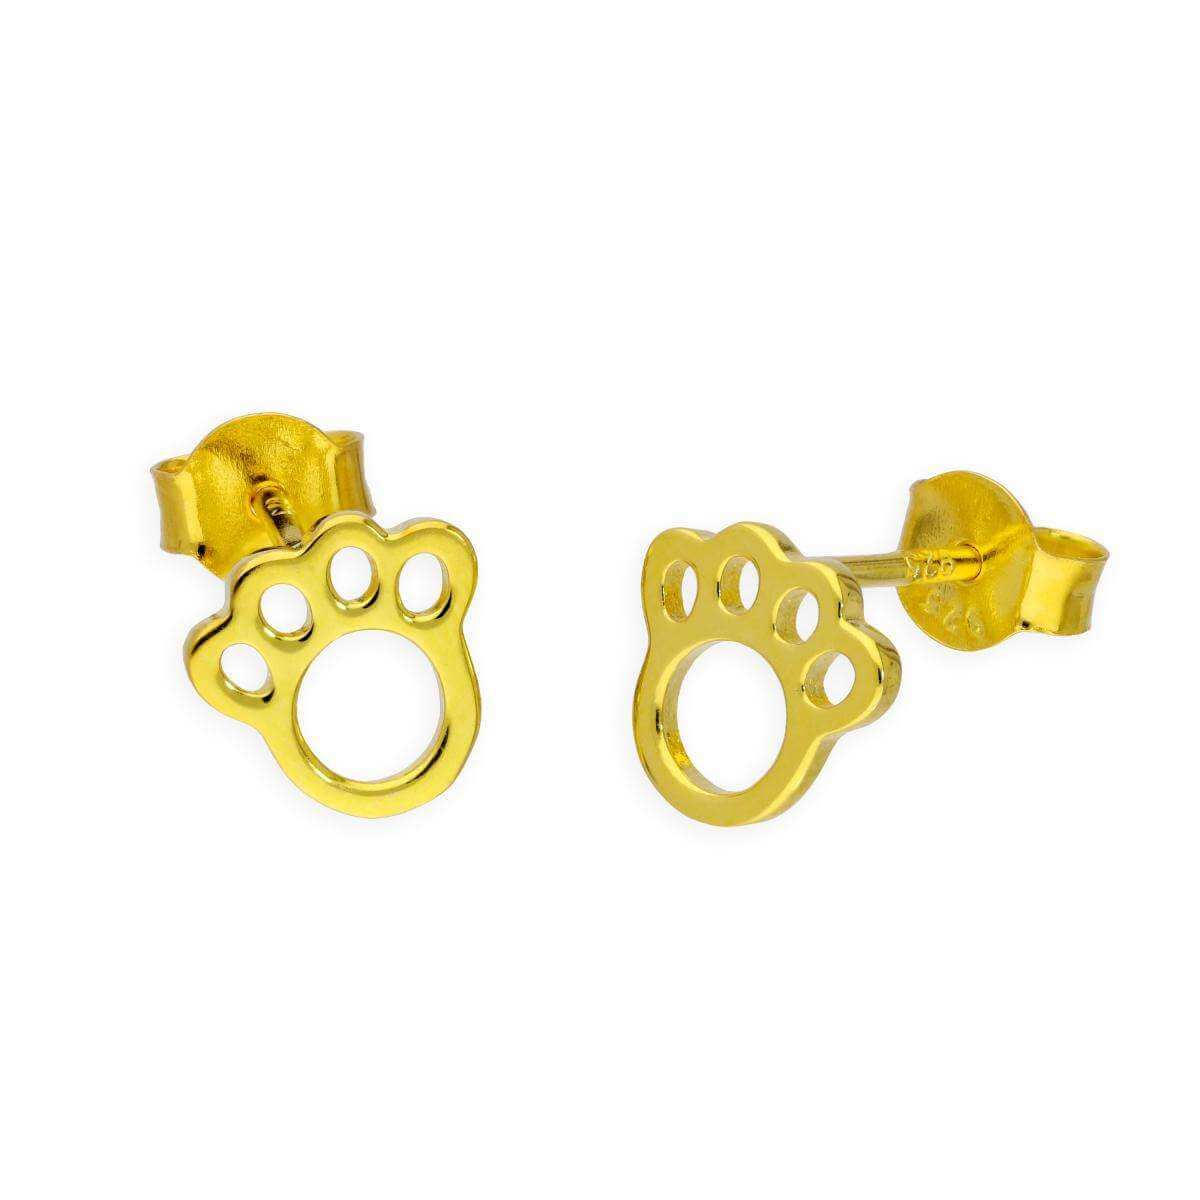 Gold Plated Sterling Silver Animal Pawprint Stud Earrings